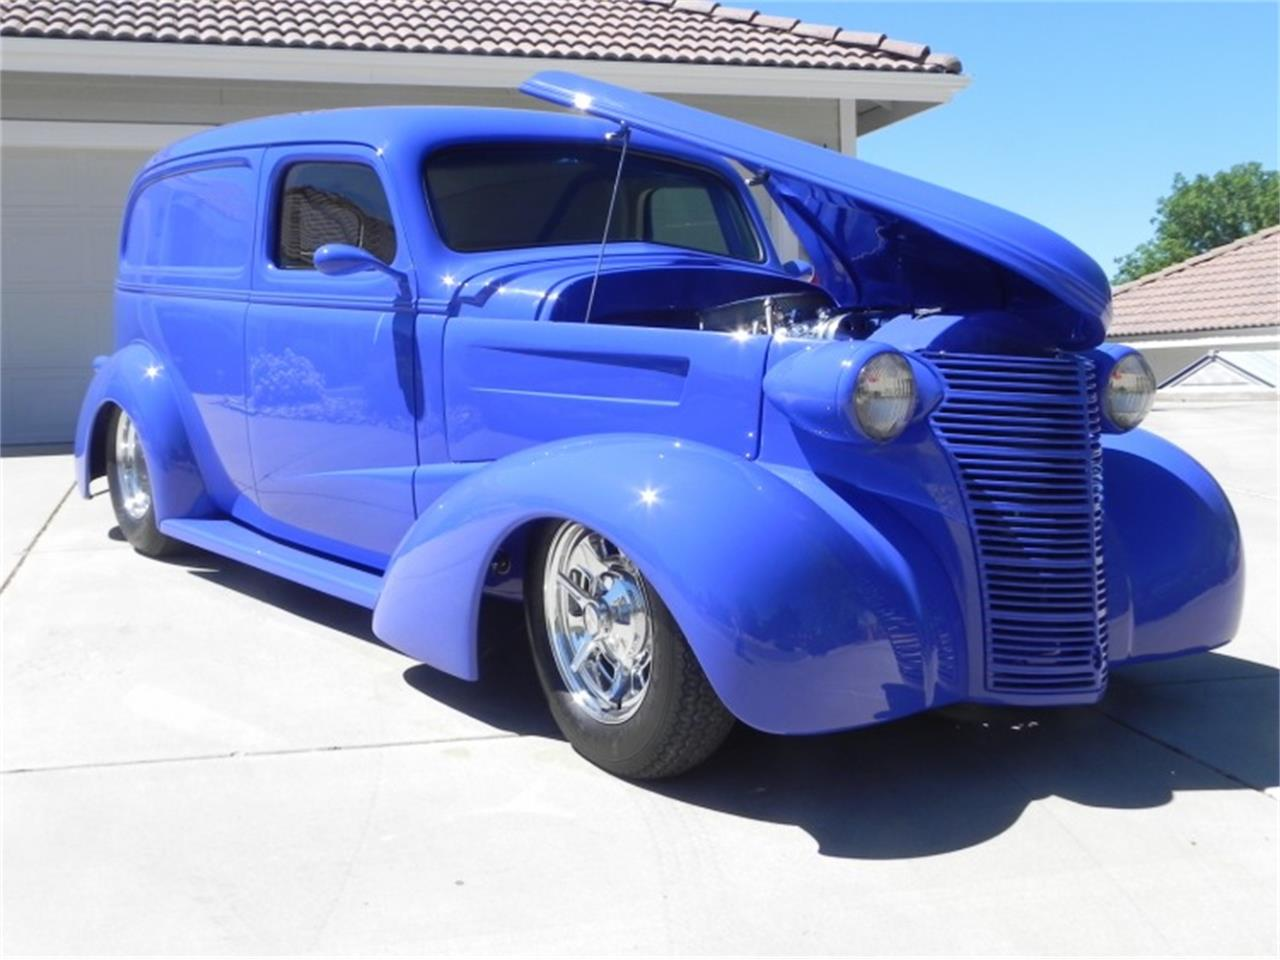 Large Picture of '38 Sedan located in Sparks Nevada Auction Vehicle Offered by Motorsport Auction Group - QMBQ